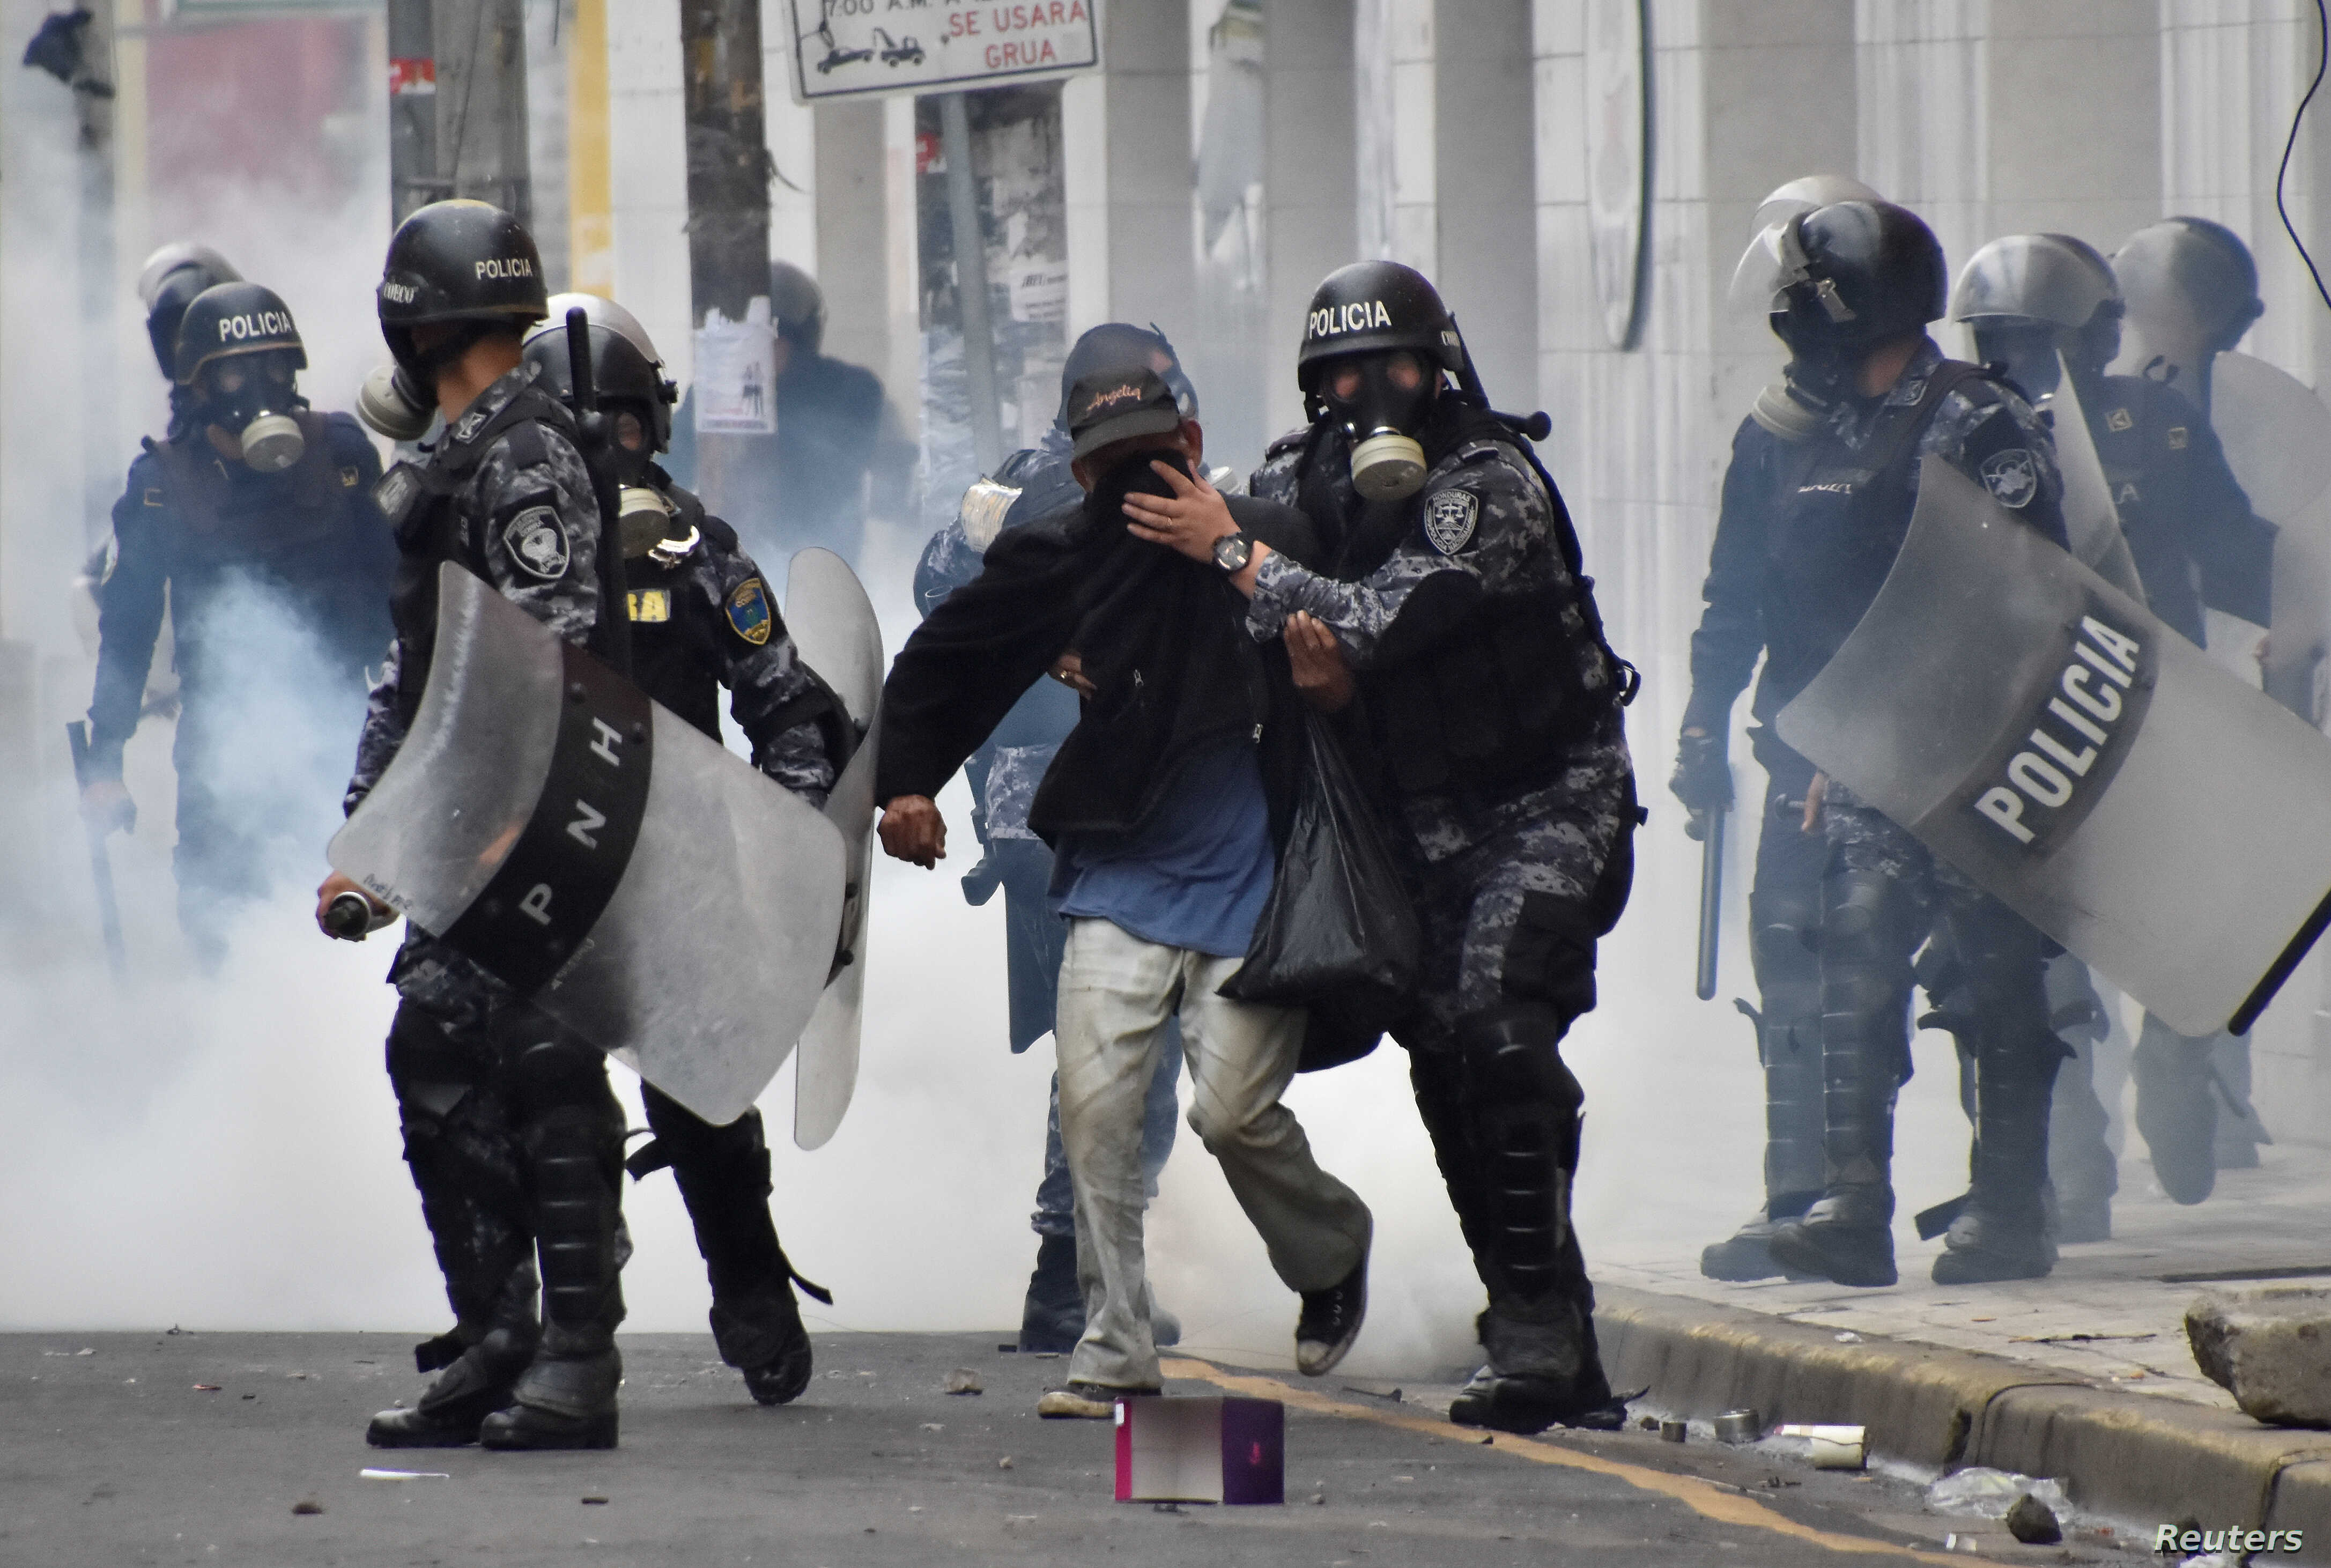 Police help a pedestrian overcome by tear gas as supporters of Salvador Nasralla, presidential candidate for the Opposition Alliance Against the Dictatorship, clash with police during a protest caused by the delayed vote count for the presidential el